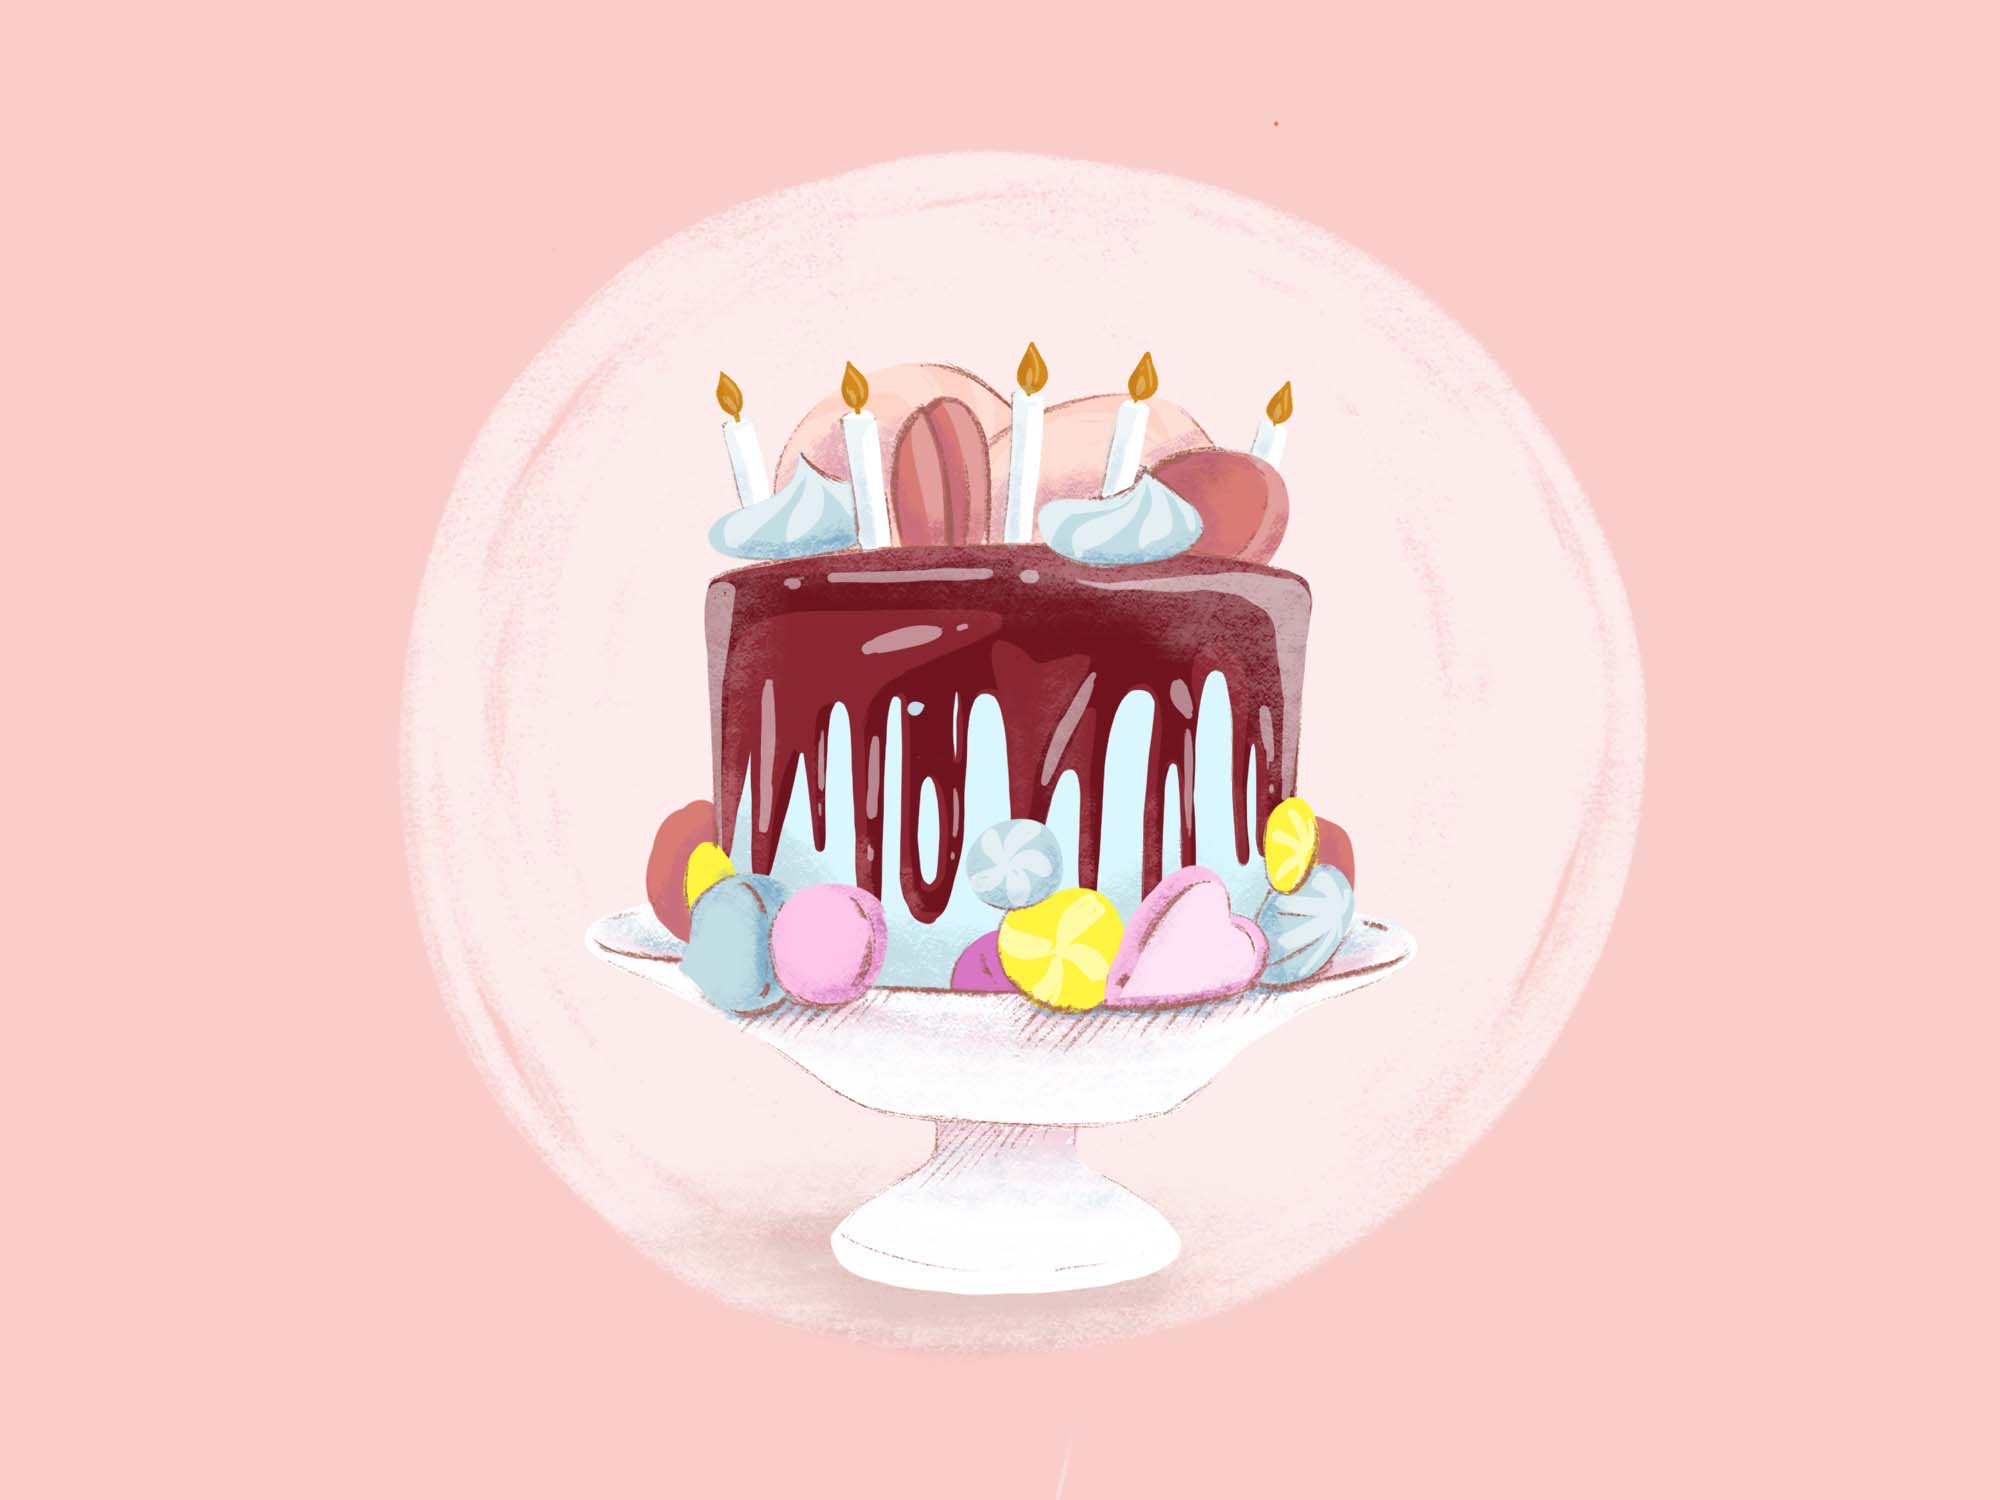 Birthday Cake Illustration 2